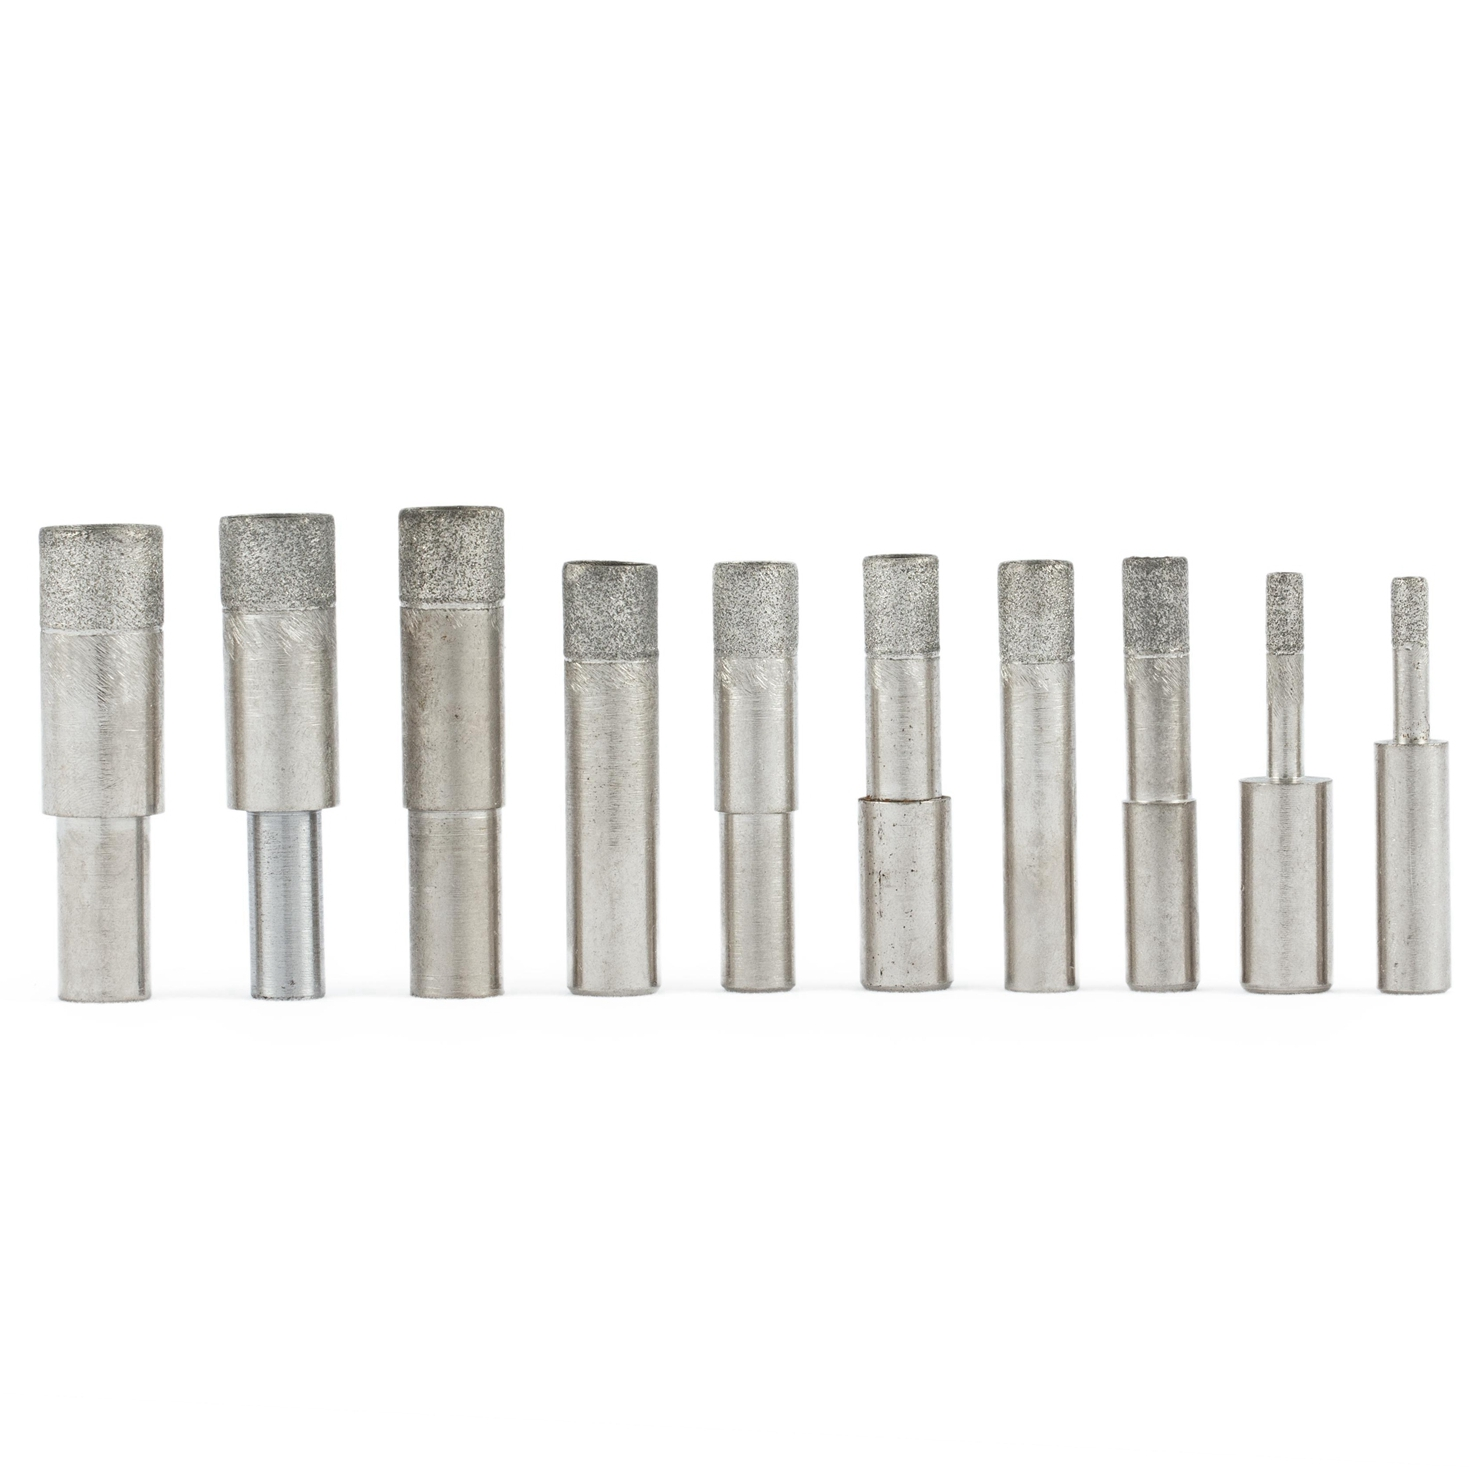 Durable 3-13mm Composite Electroplating Diamond Core Bit Cutting Hole Saw Glass